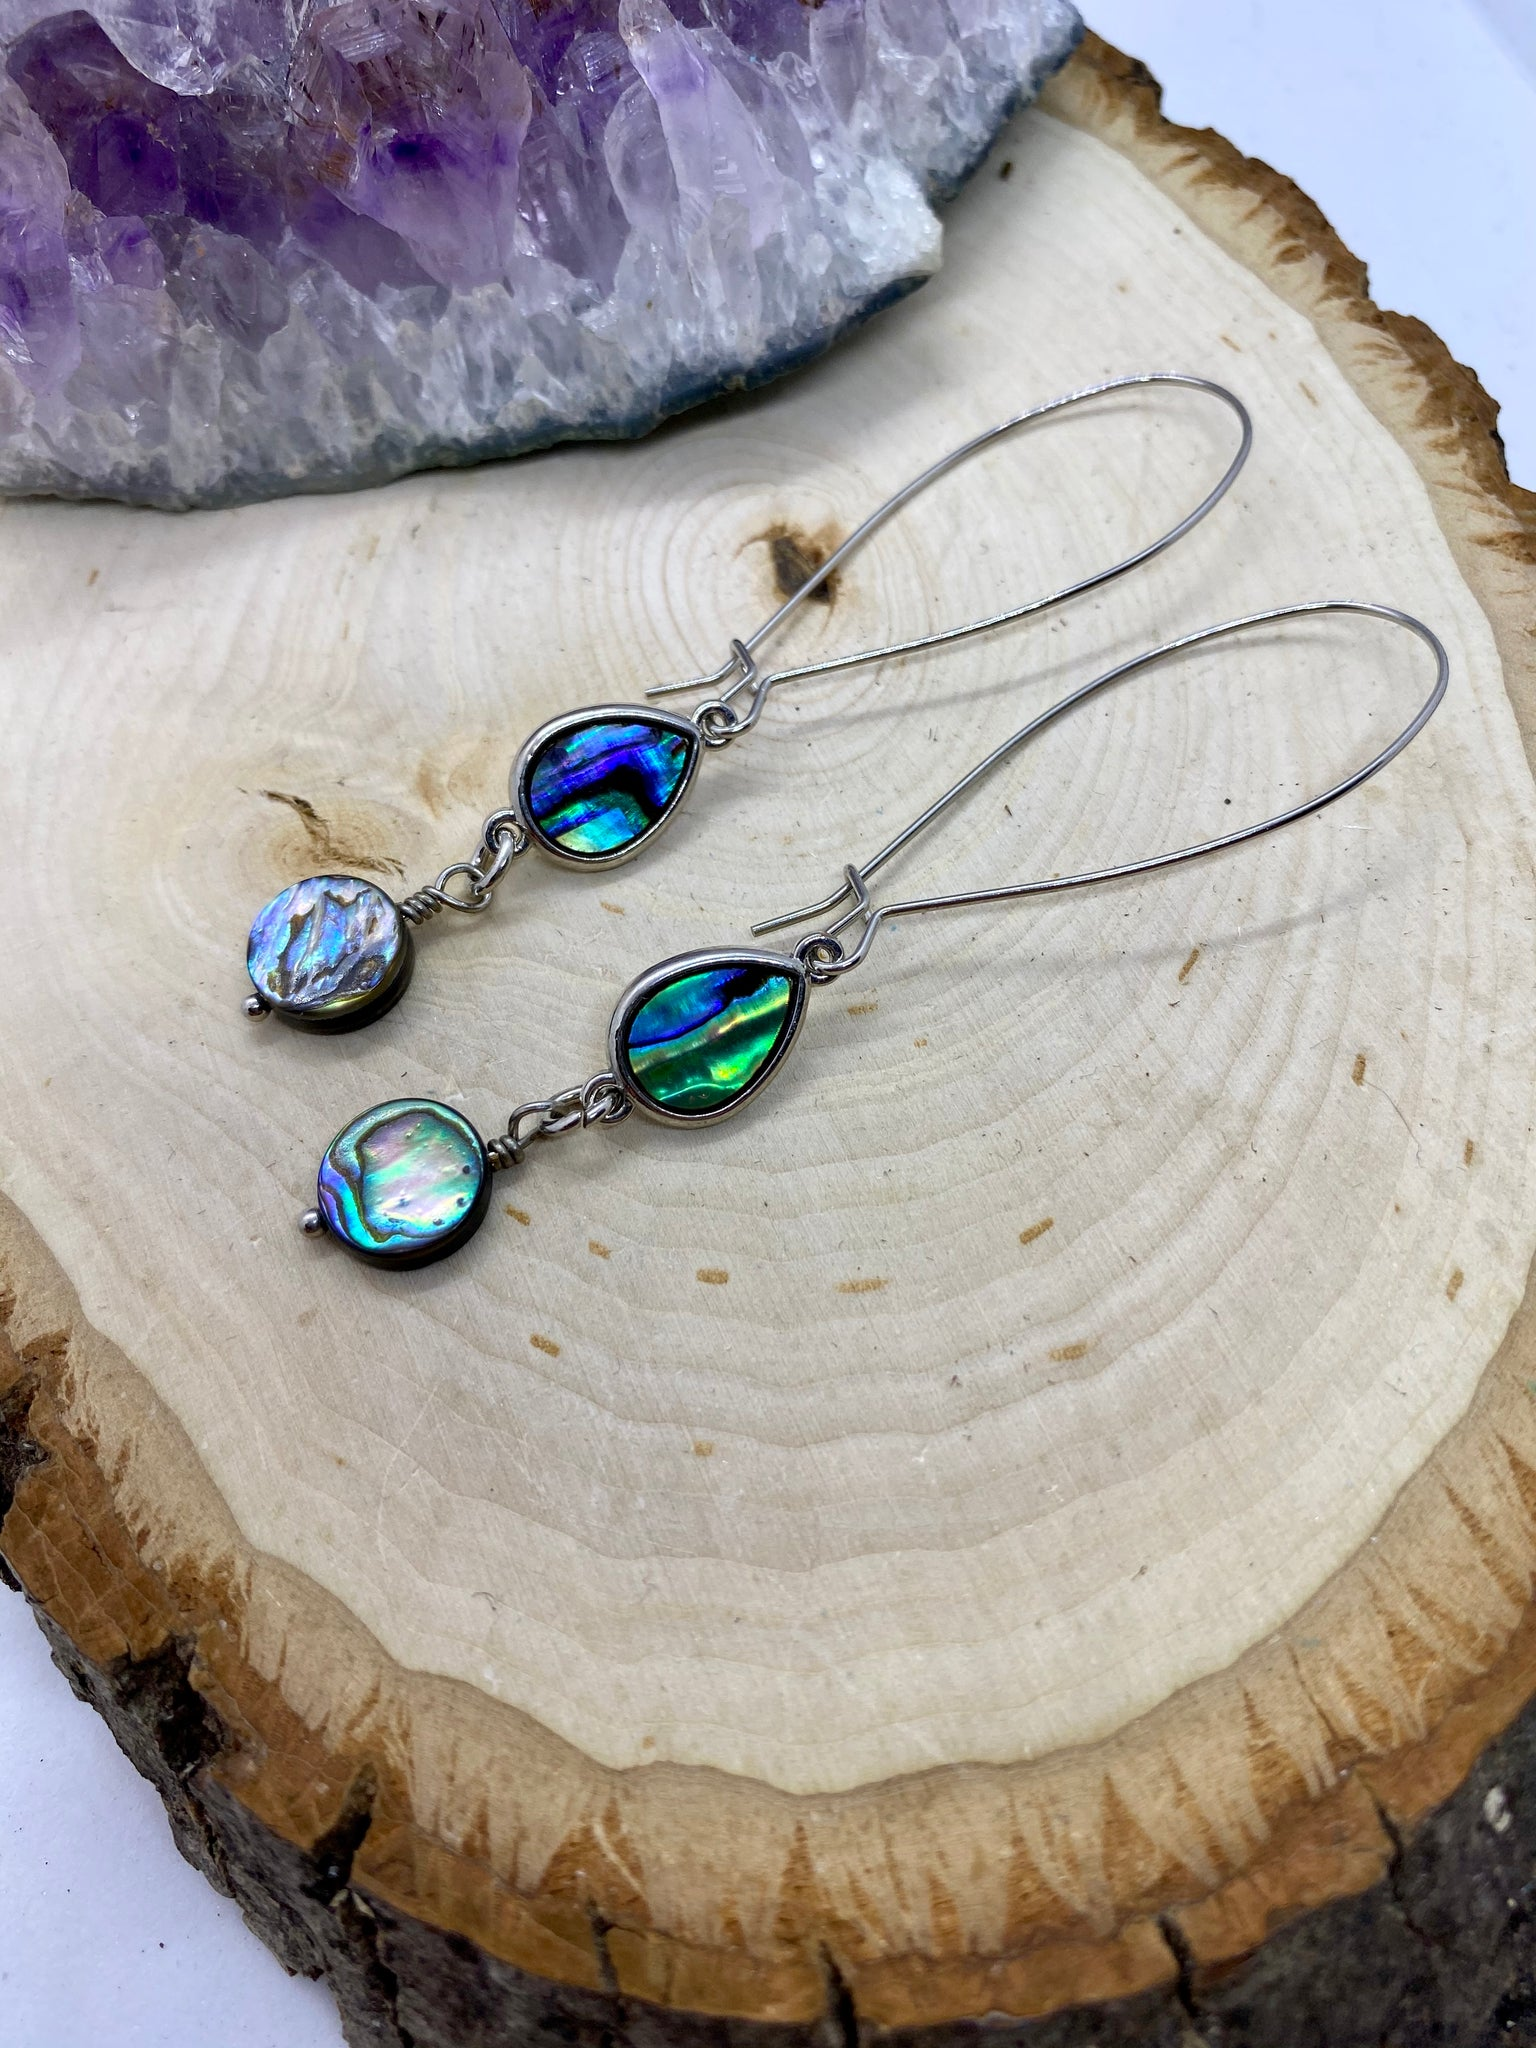 Abalone Shell wrapped in Silver Earrings